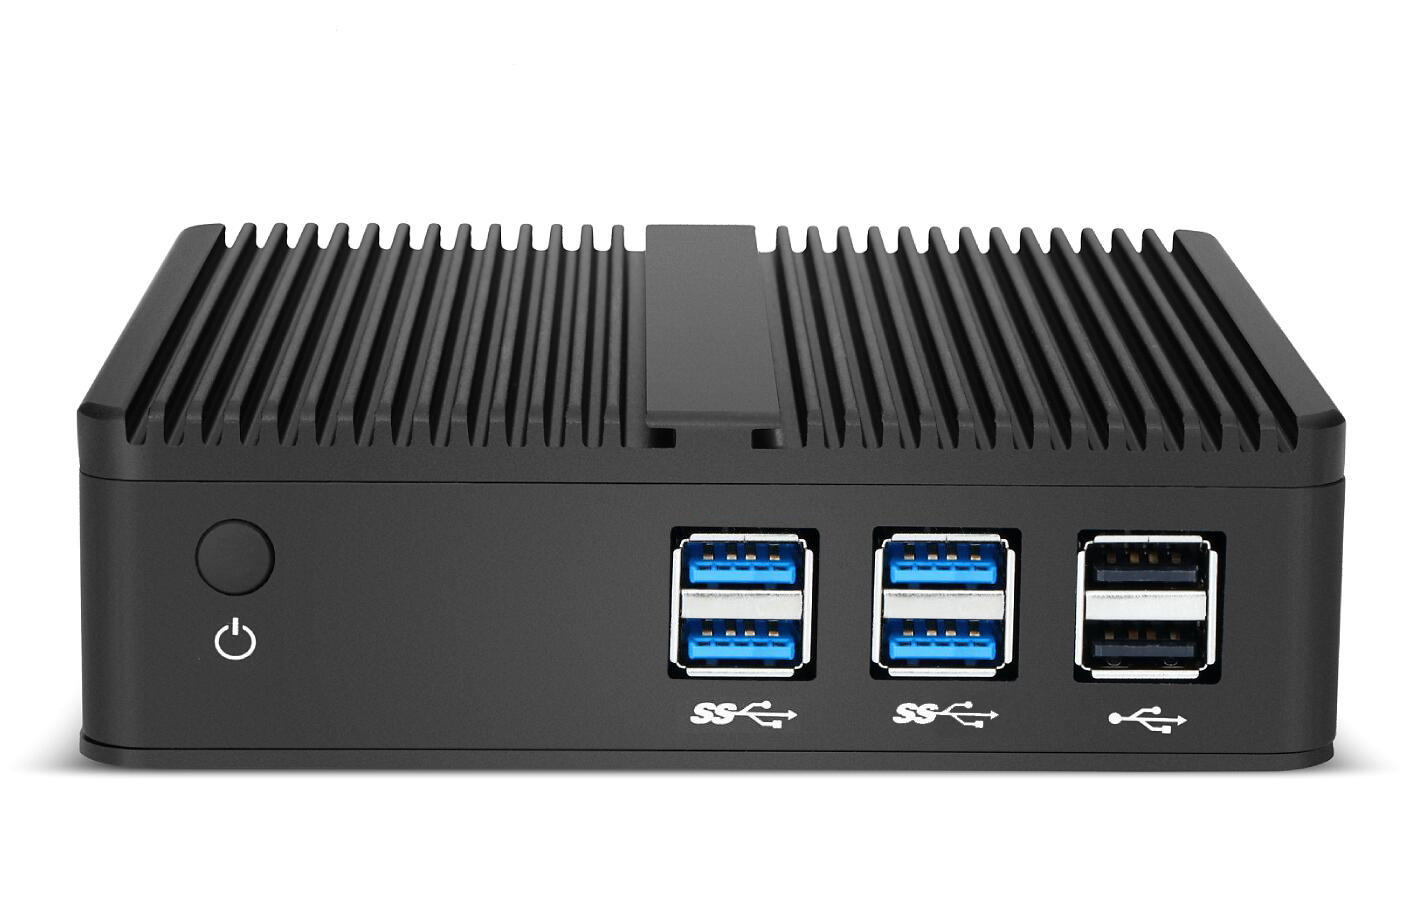 XCY X30 Mini PC I7-4500U Barebone 1.8GHz Intel HD Graphics 4200 Windows 10 Dual Core Fanless